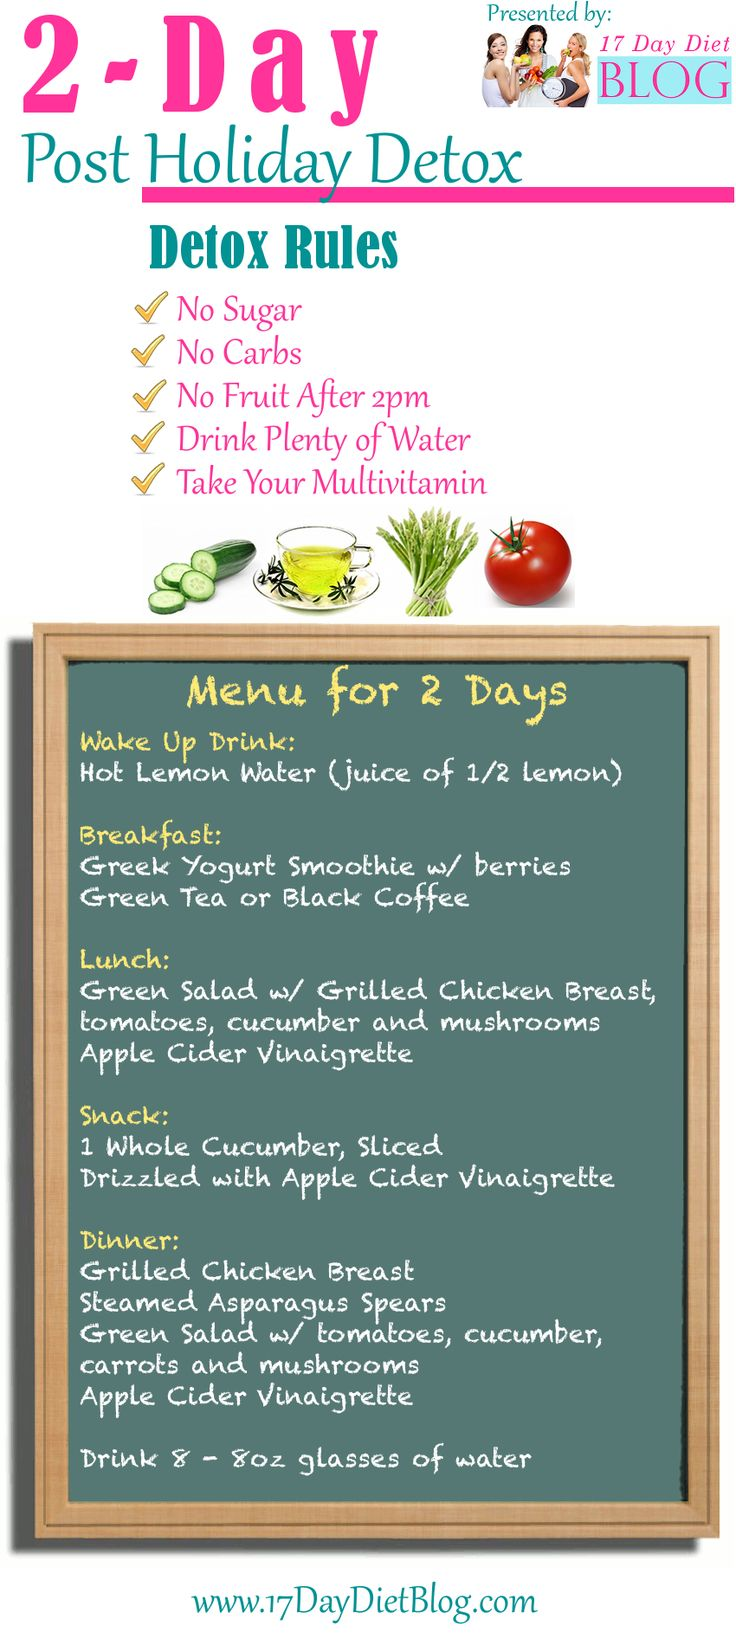 2-Day Post Holiday Detox perfect for losing those stubbord pounds from holiday feasting.  Click here for your free printable download detox plan. #Detox #Cleanse